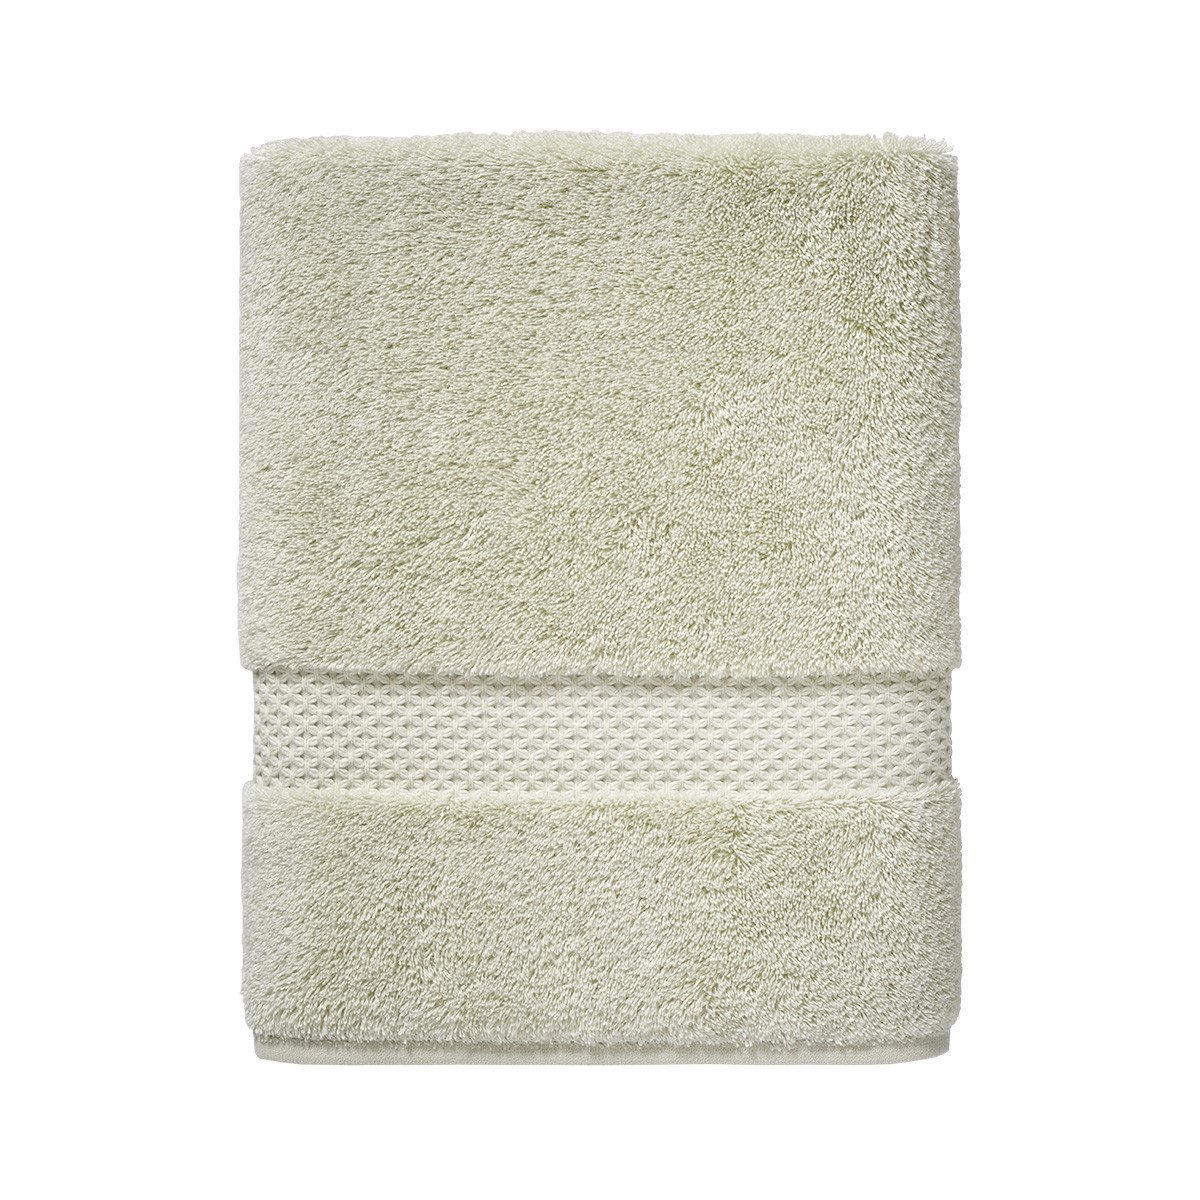 Etoile Sauge Bath Towels by Yves Delorme